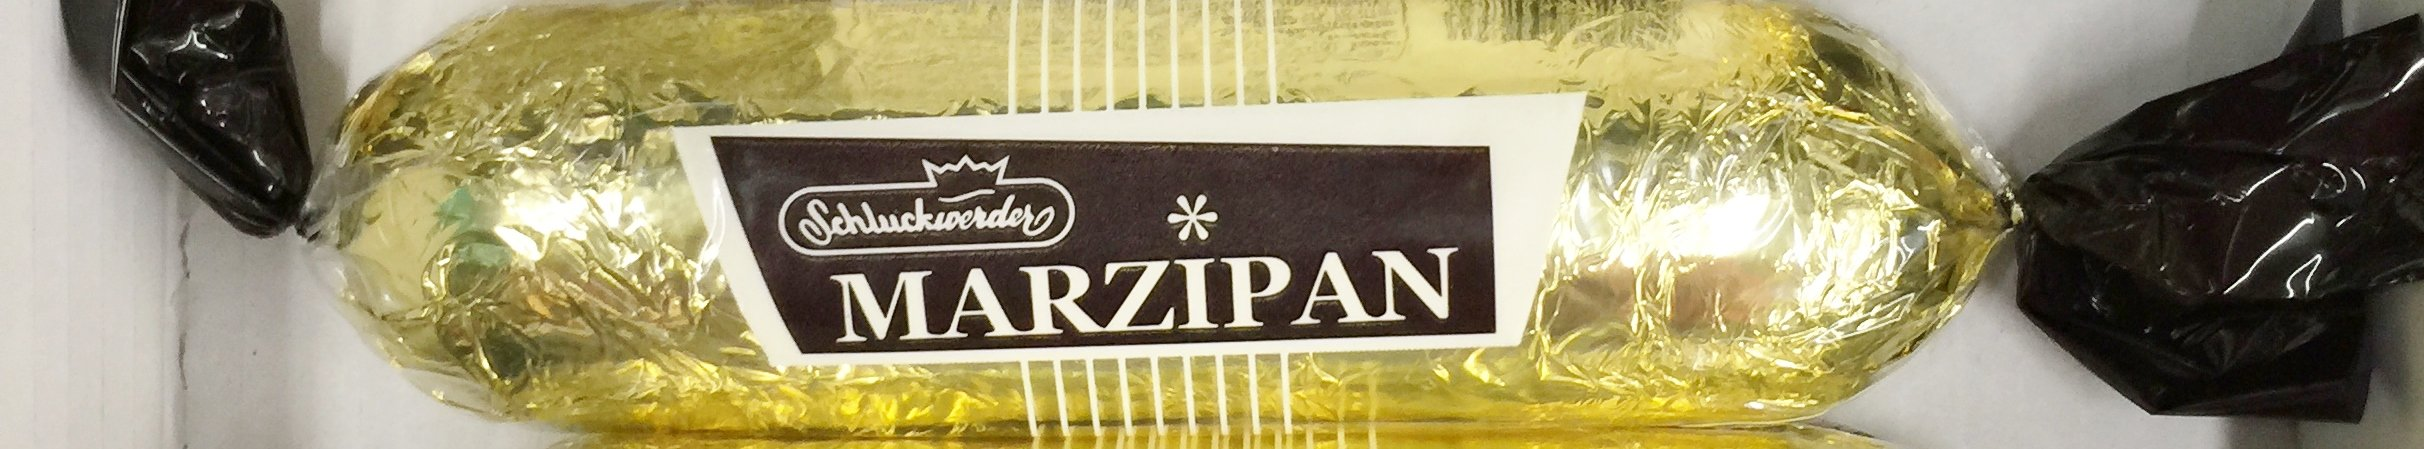 6.7oz Schluckwerder Marzipan Almond Paste 85% Covered with 13% Chocolate, Pack of 2